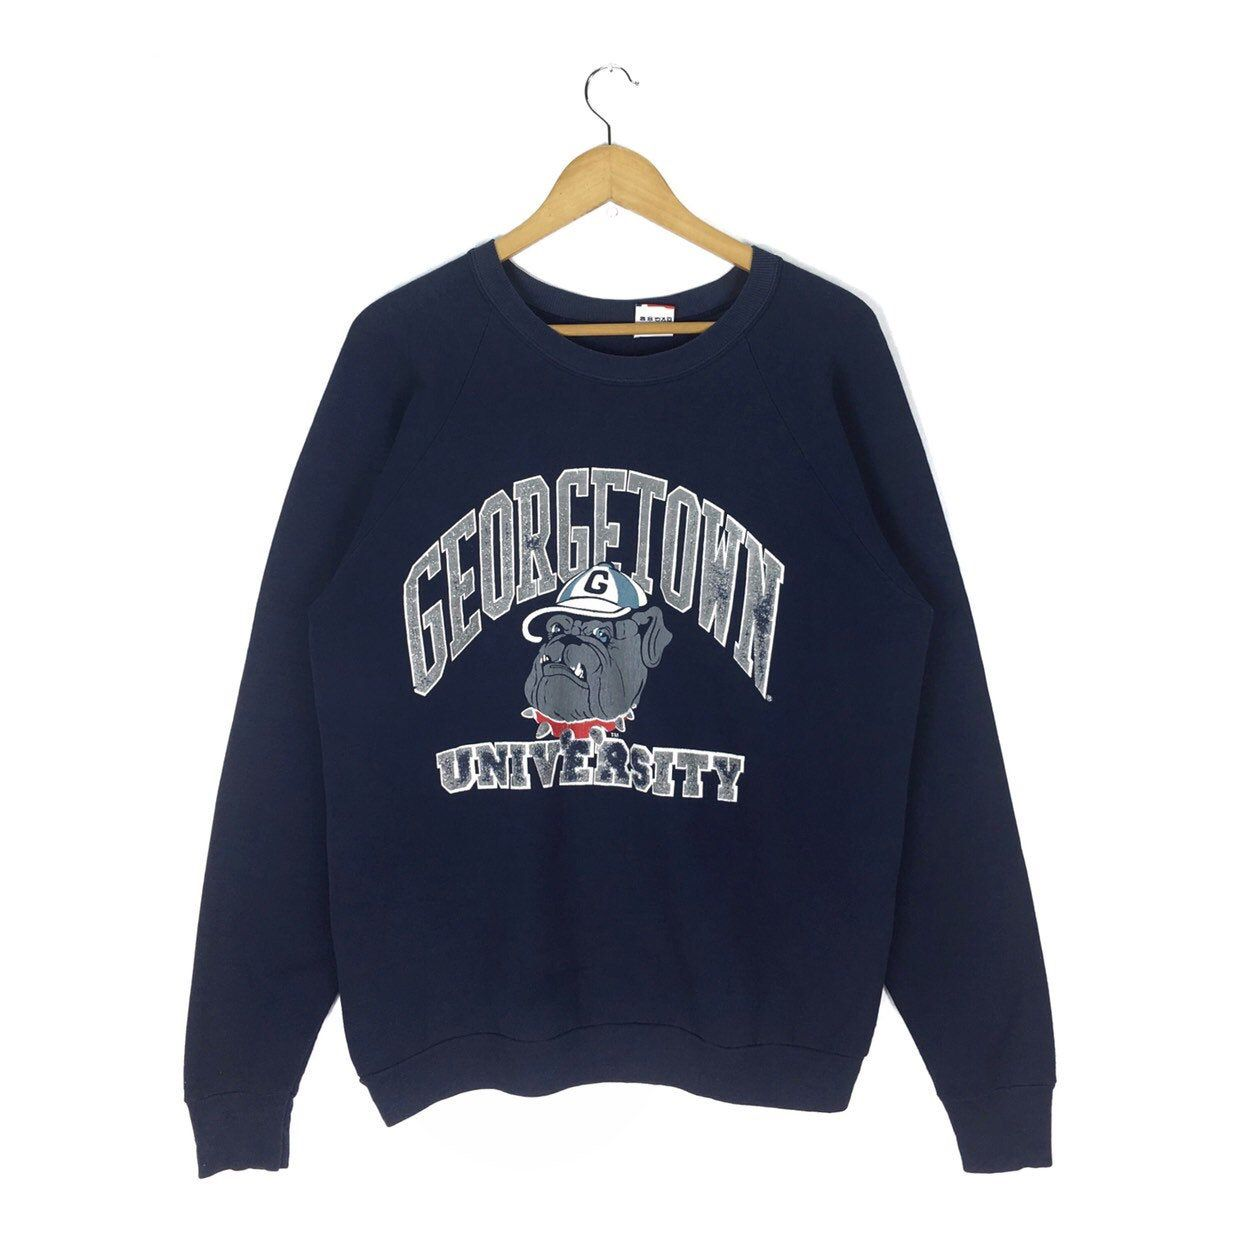 Vintage 90s Georgetown University Football Sweatshirt Crewneck Etsy Sweatshirts Football Sweatshirt Edgy Outfits [ 1242 x 1242 Pixel ]